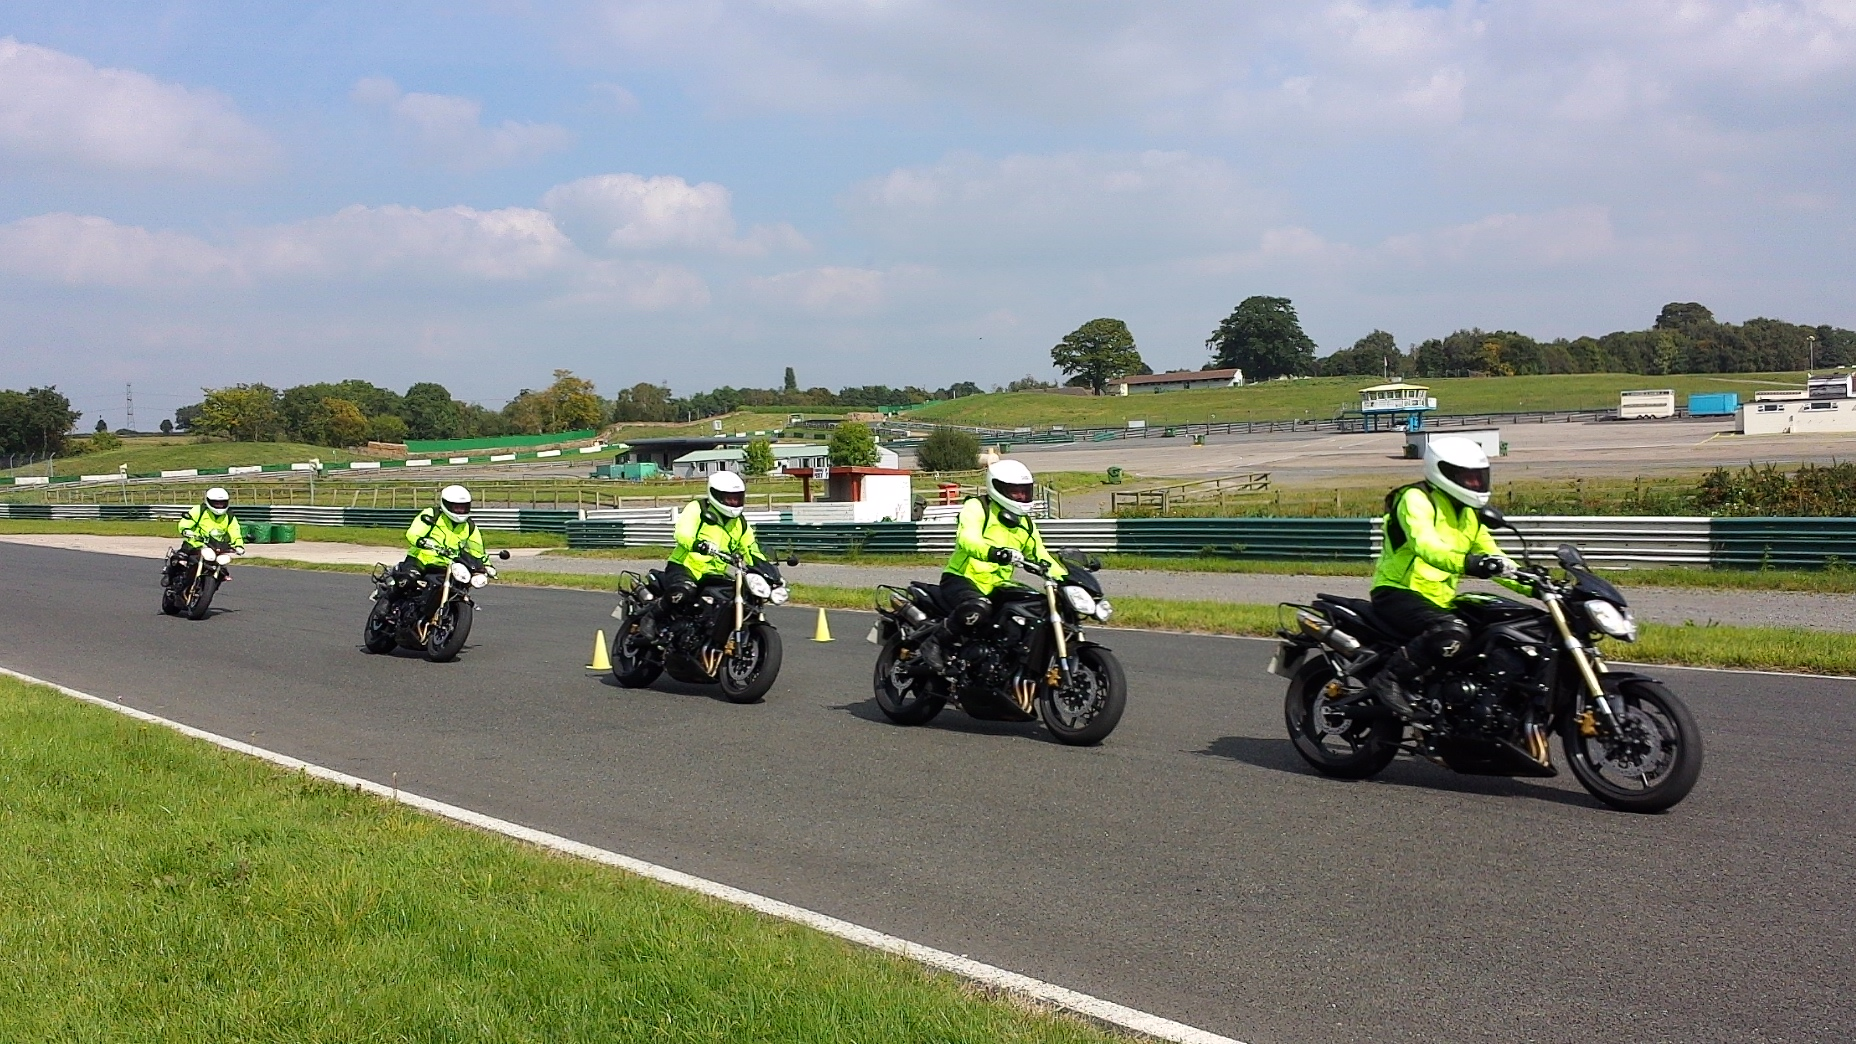 Motorcycle test in Leicester, Hinckley, Derby, Nottingham, Birmingham, St Albans, Lincoln